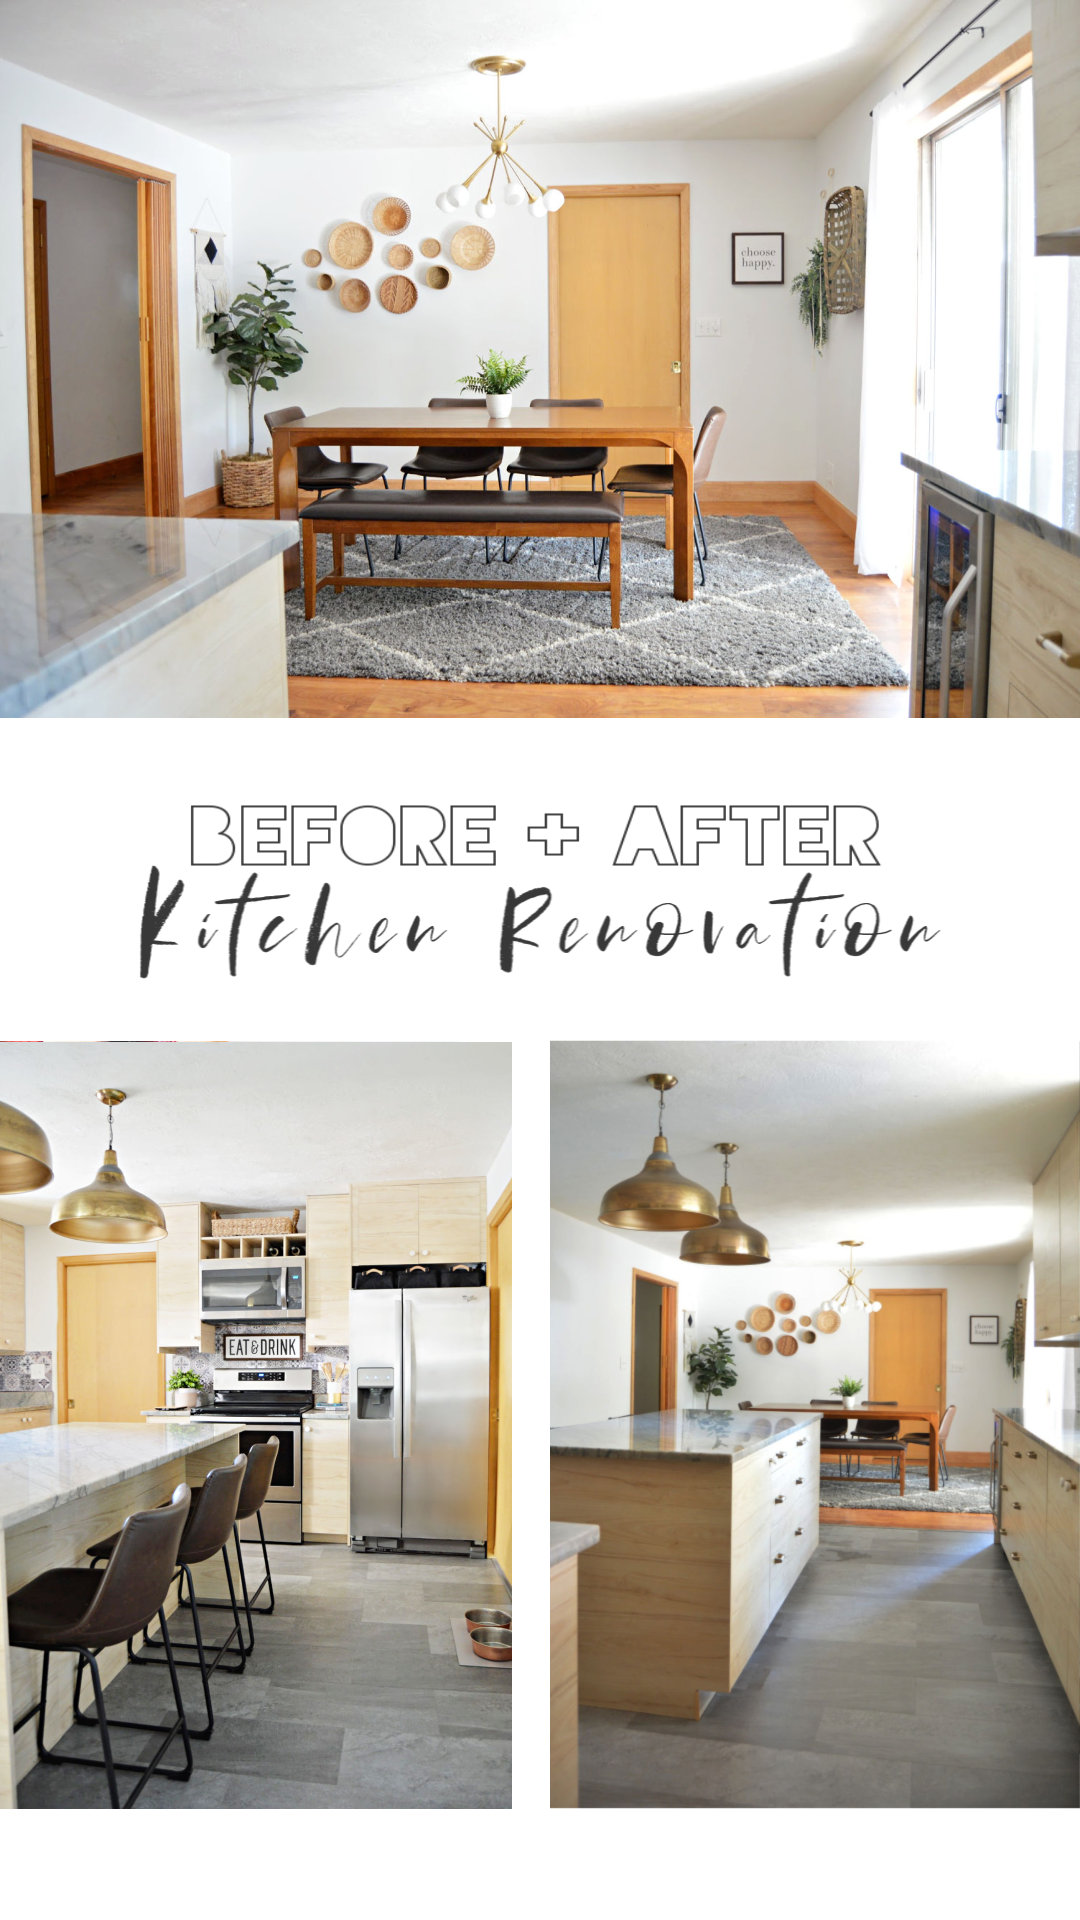 Before and After Kitchen Renovation - Rad + the rest